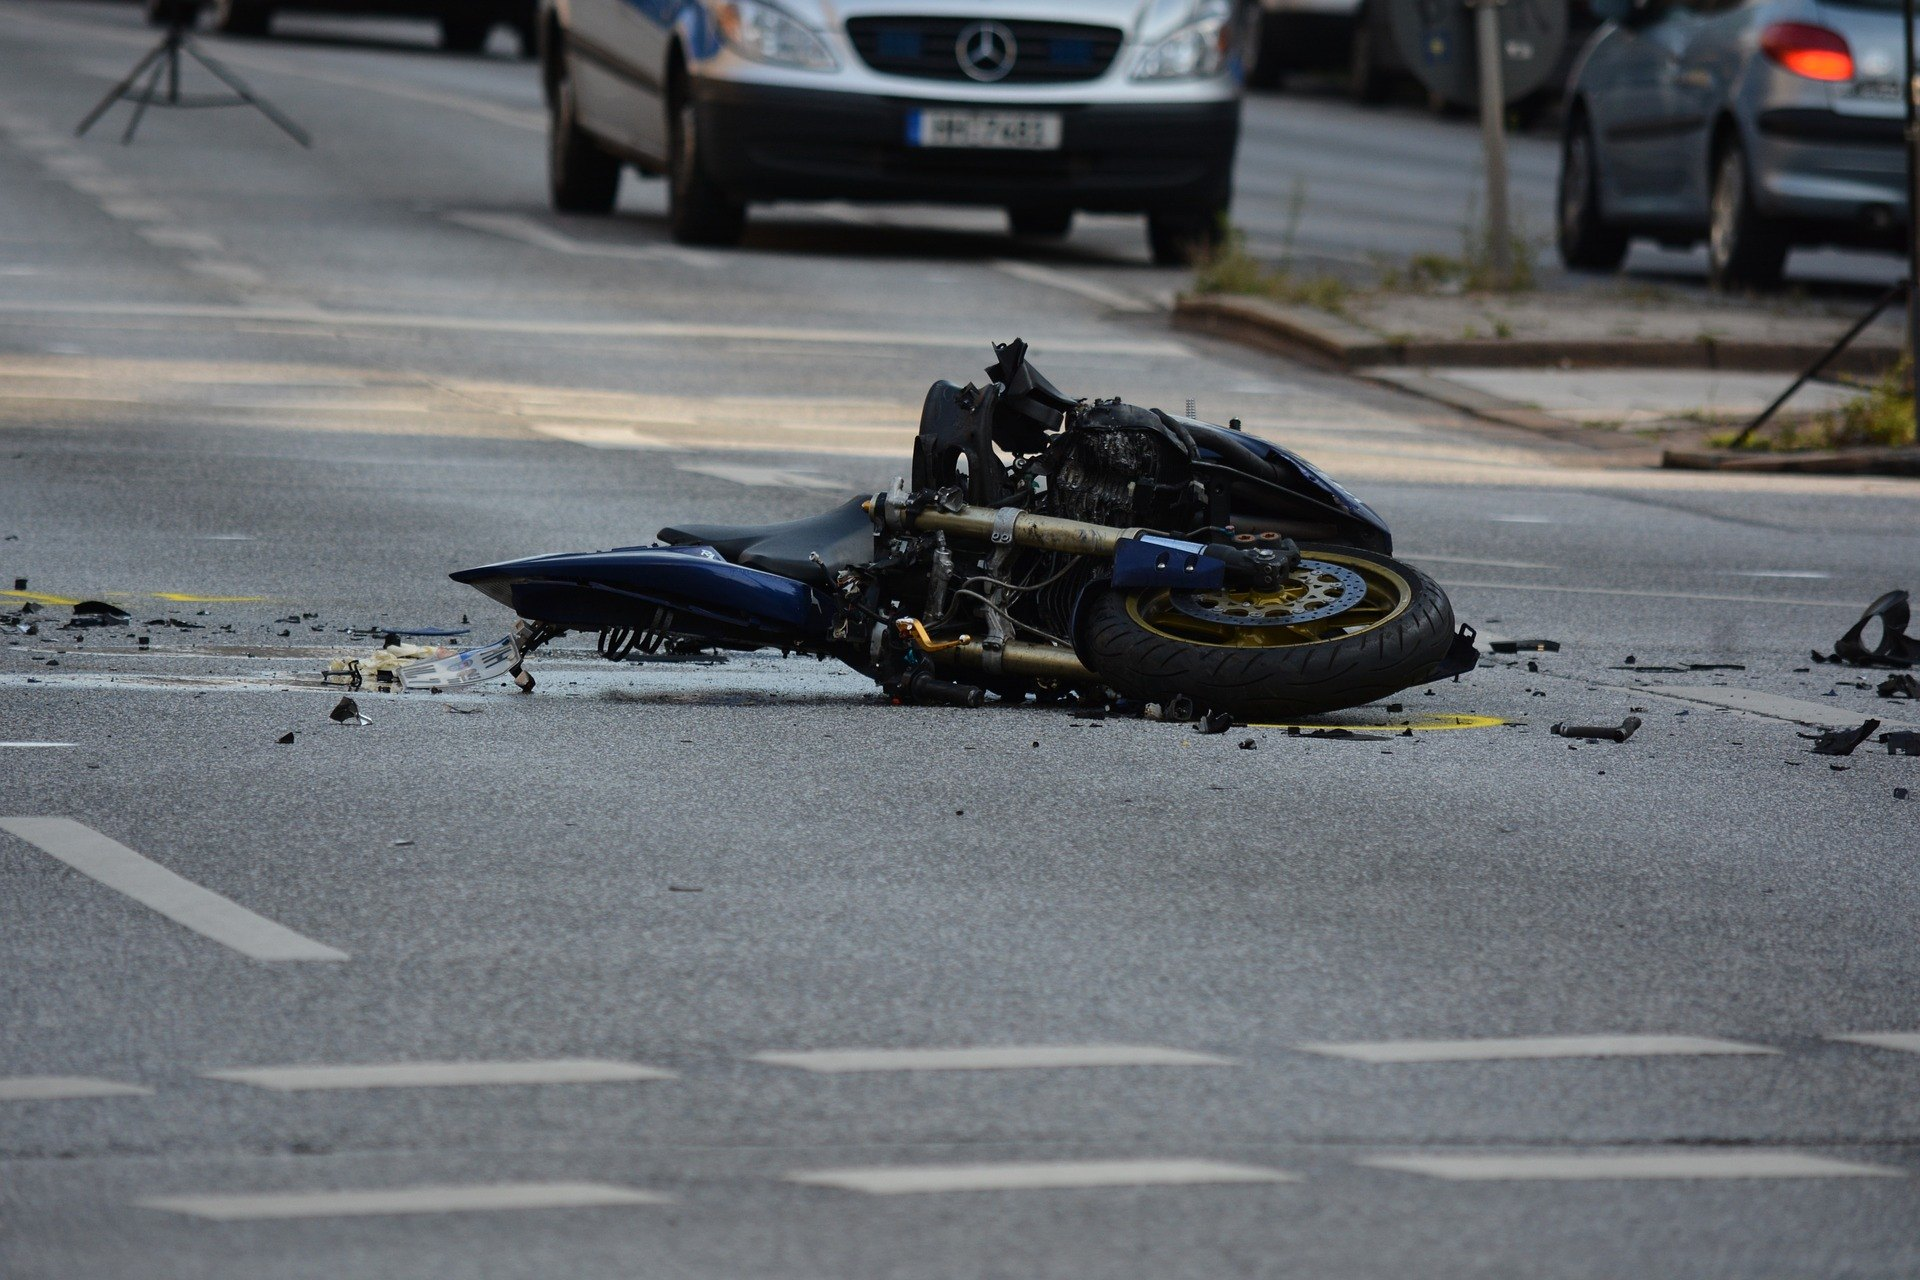 Mobile, Alabama Motorcycle Accident Attorneys